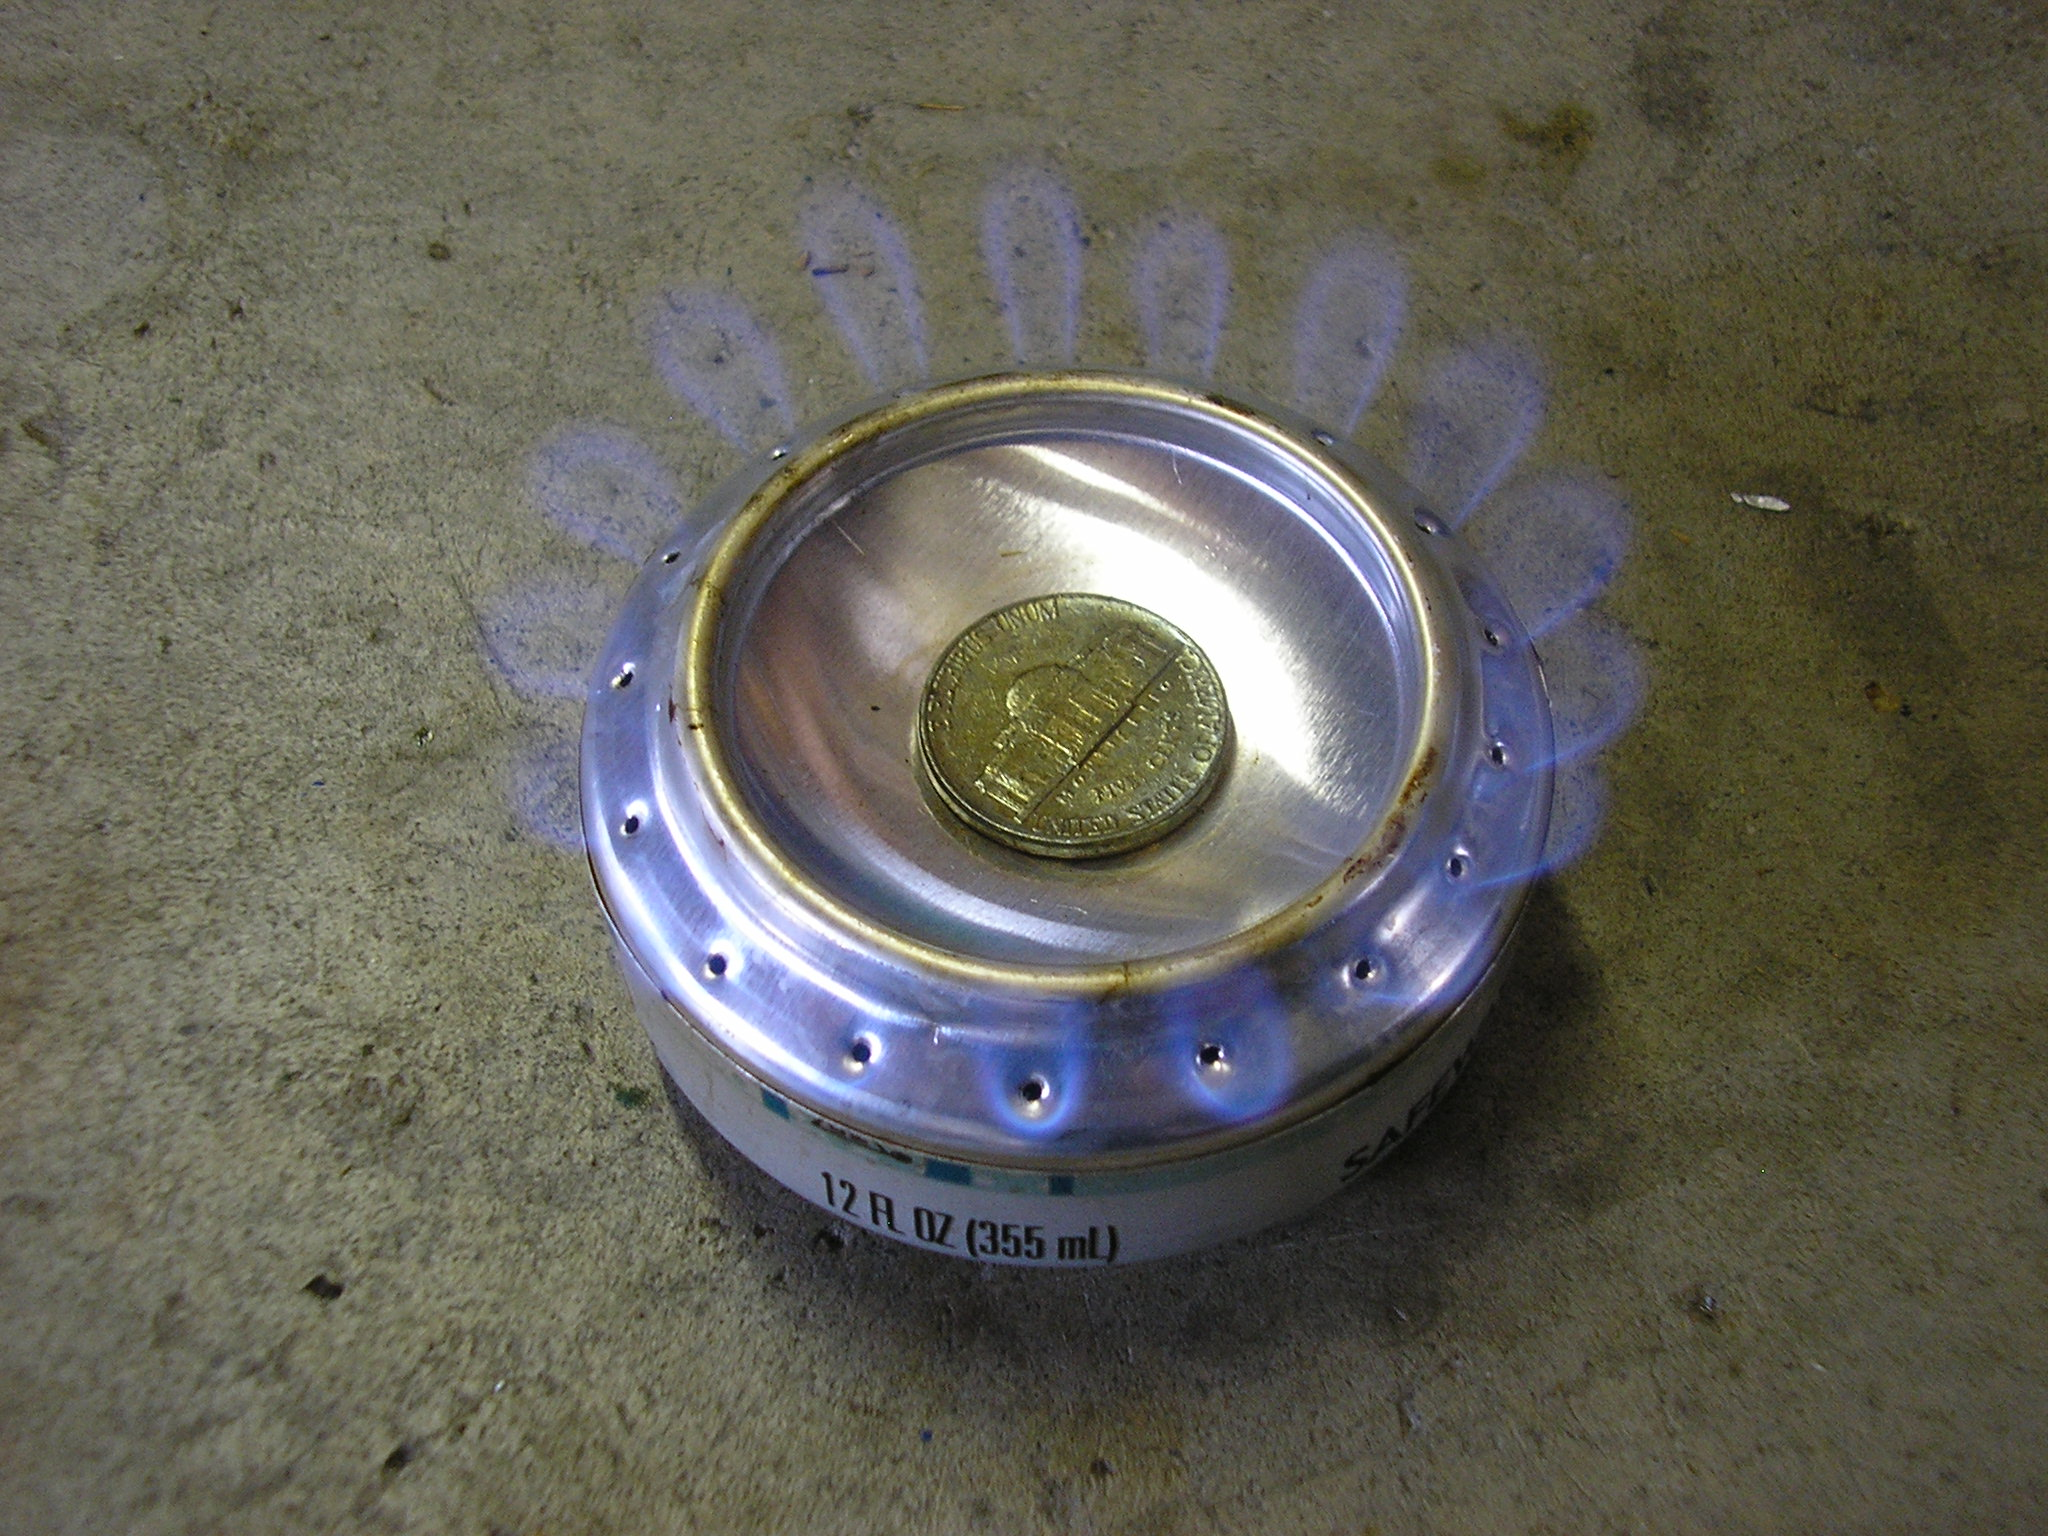 Alcohol Stove for camping | N6CC